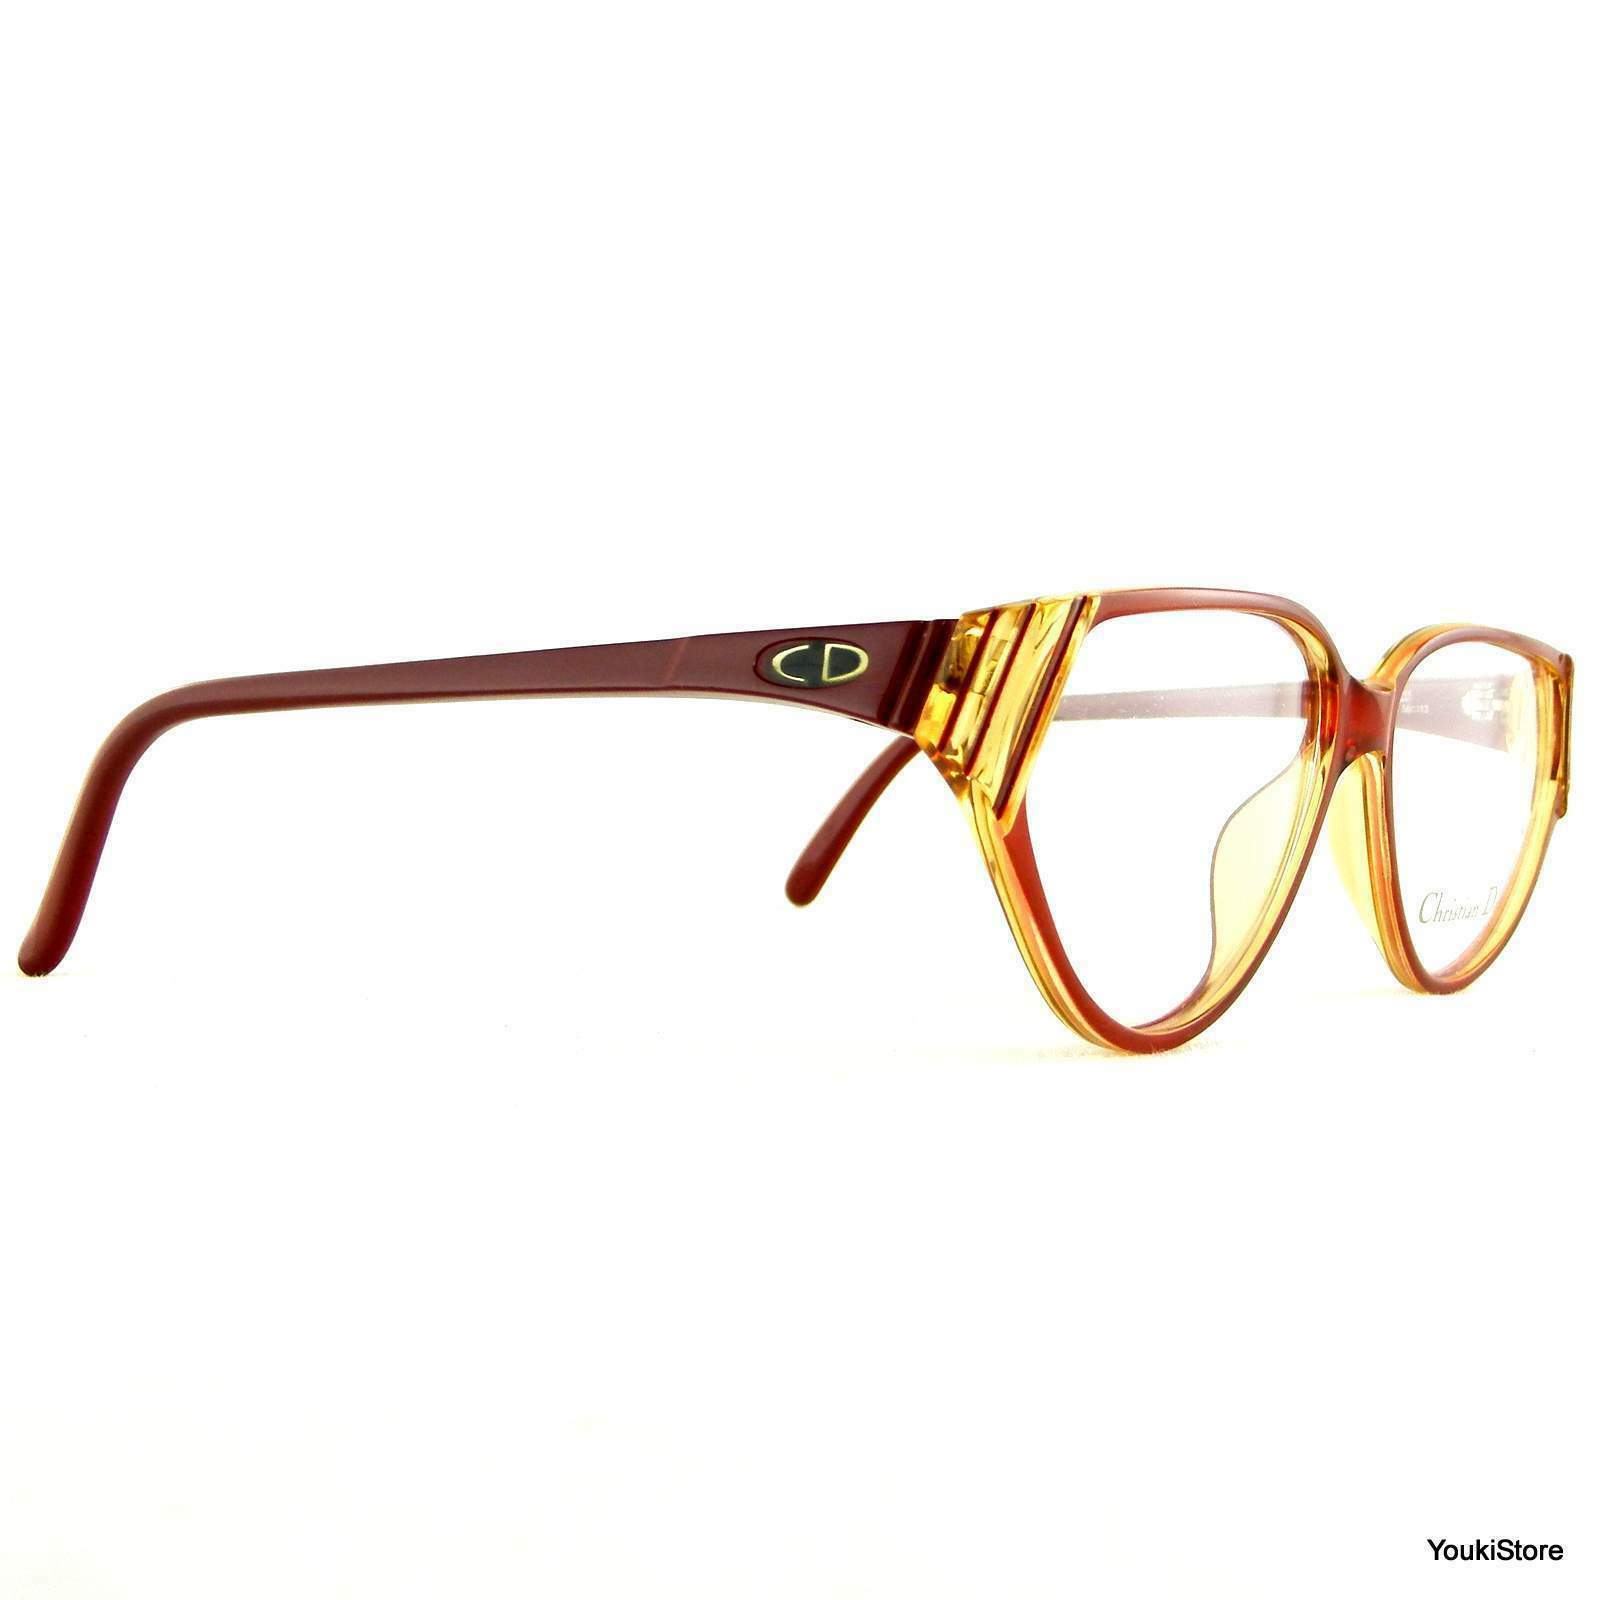 Christian DIOR Eyeglasses Vintage'80 2373 30 Optyl Made in Germany NEW-show original title